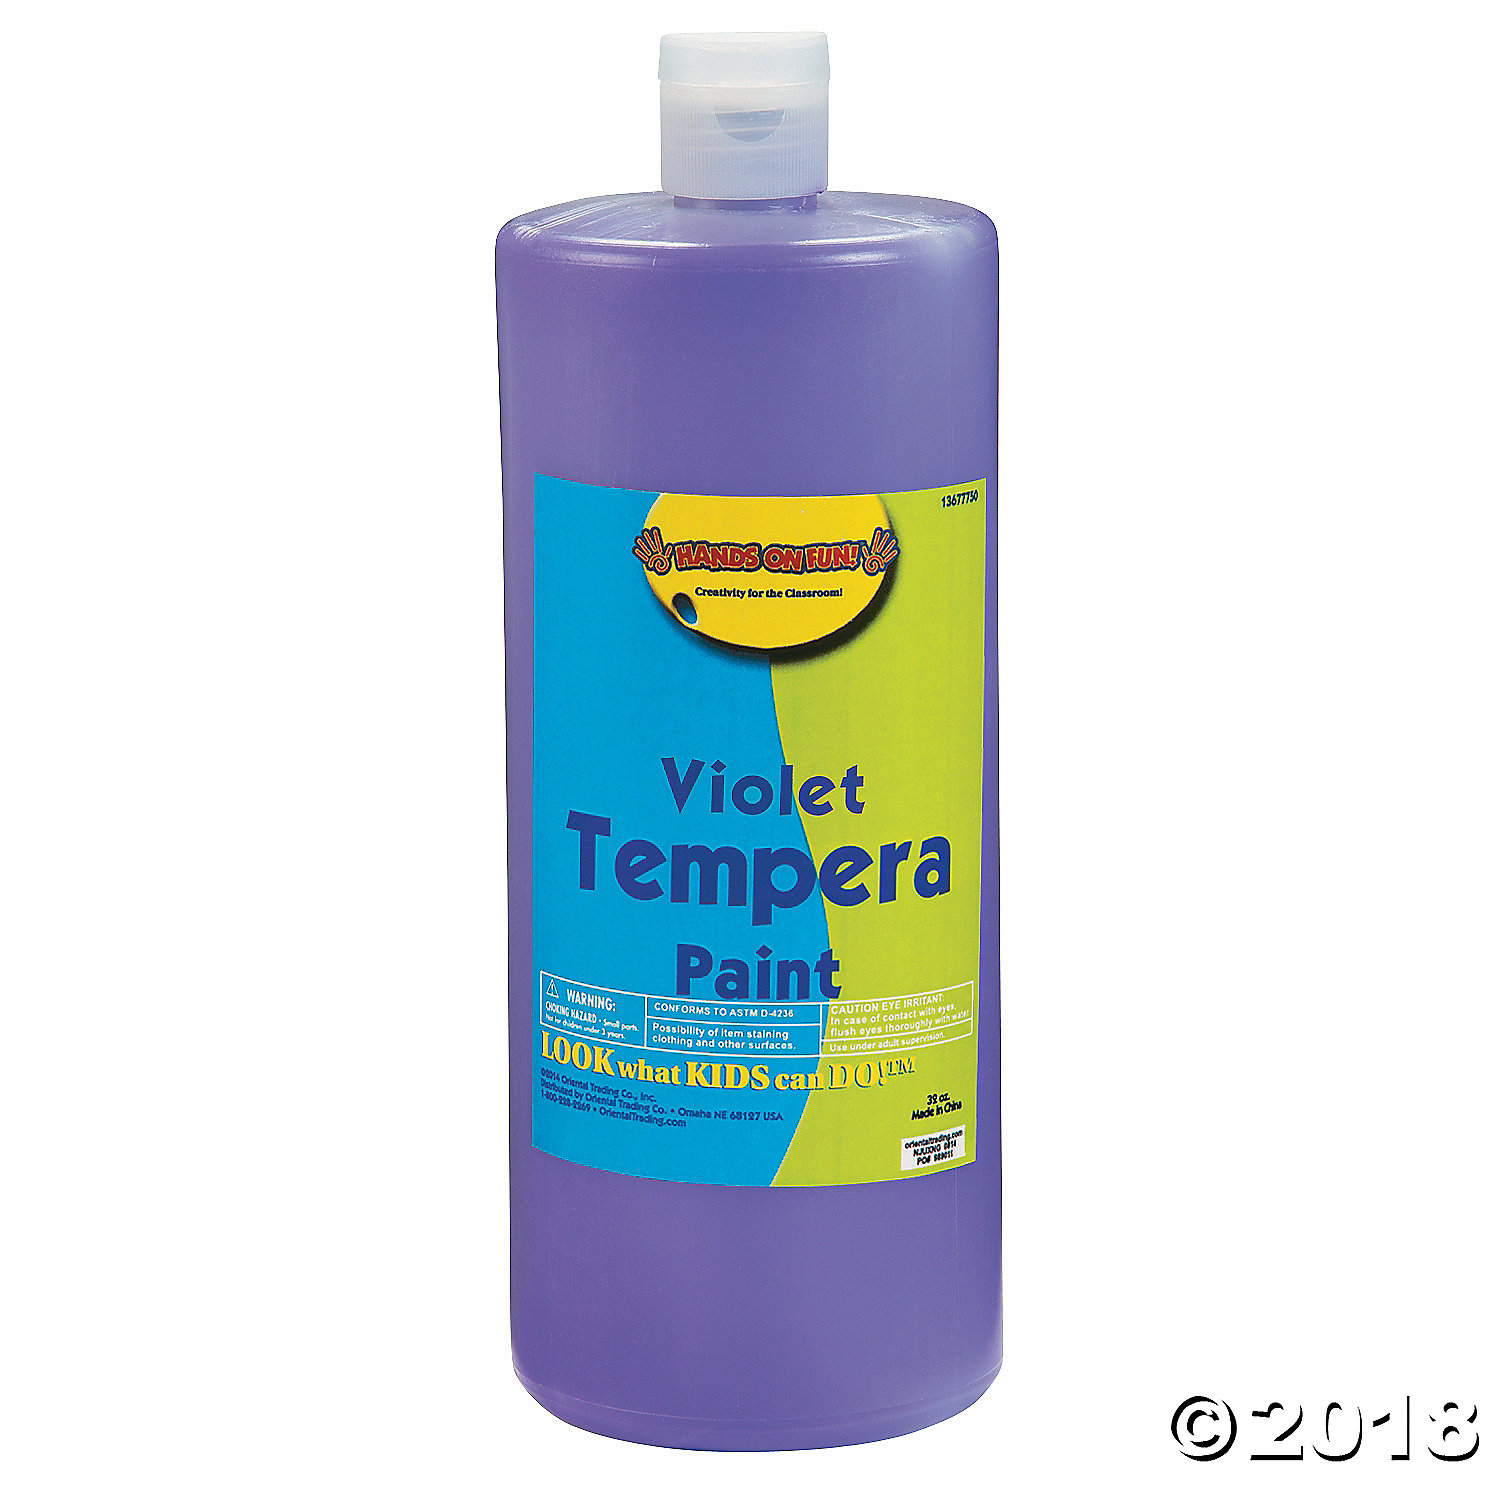 Violet Tempera Paint(pack of 1)